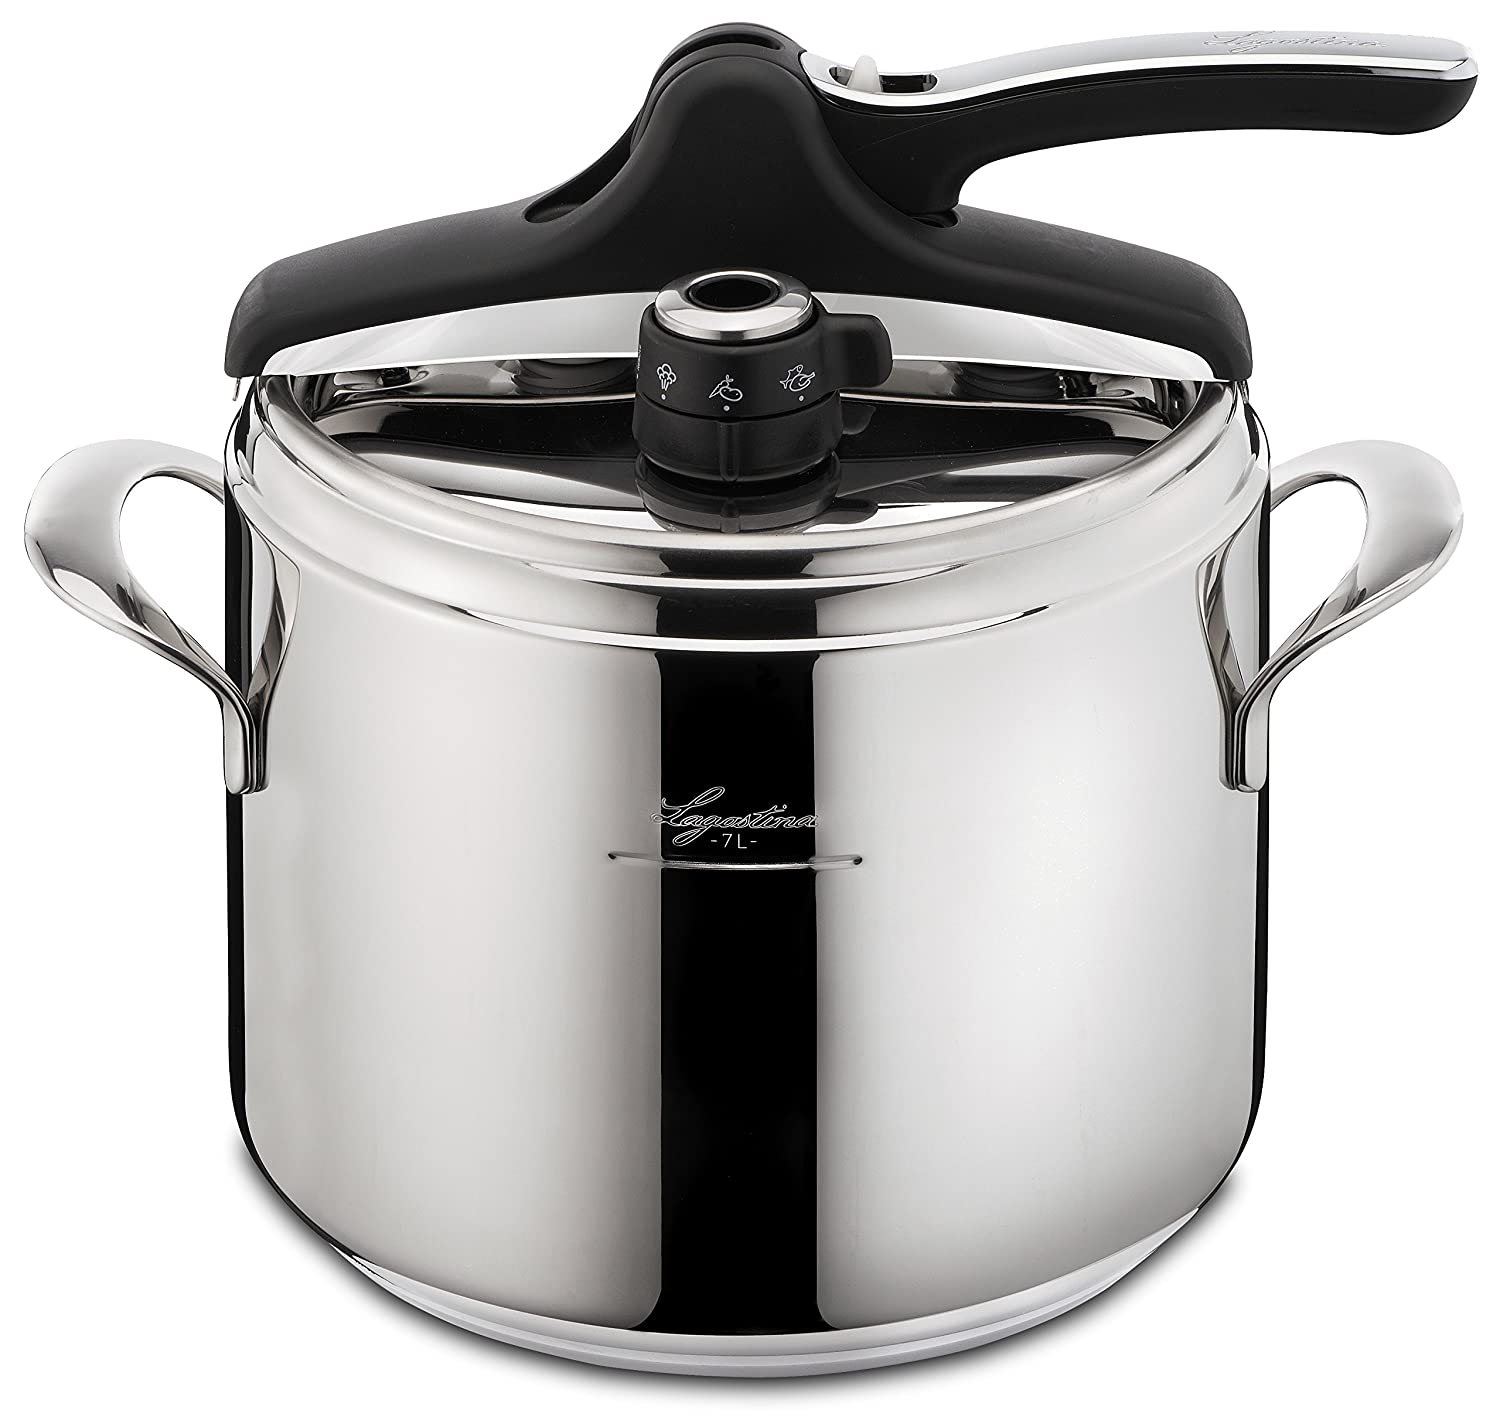 Amazon.com: Lagostina Q5510664 Domina Vitamin Polished Stainless Steel  Induction Safe 6 / 10-PSI Pressure Cooker Cookware, 7.4-Quart, Silver:  Kitchen & ...